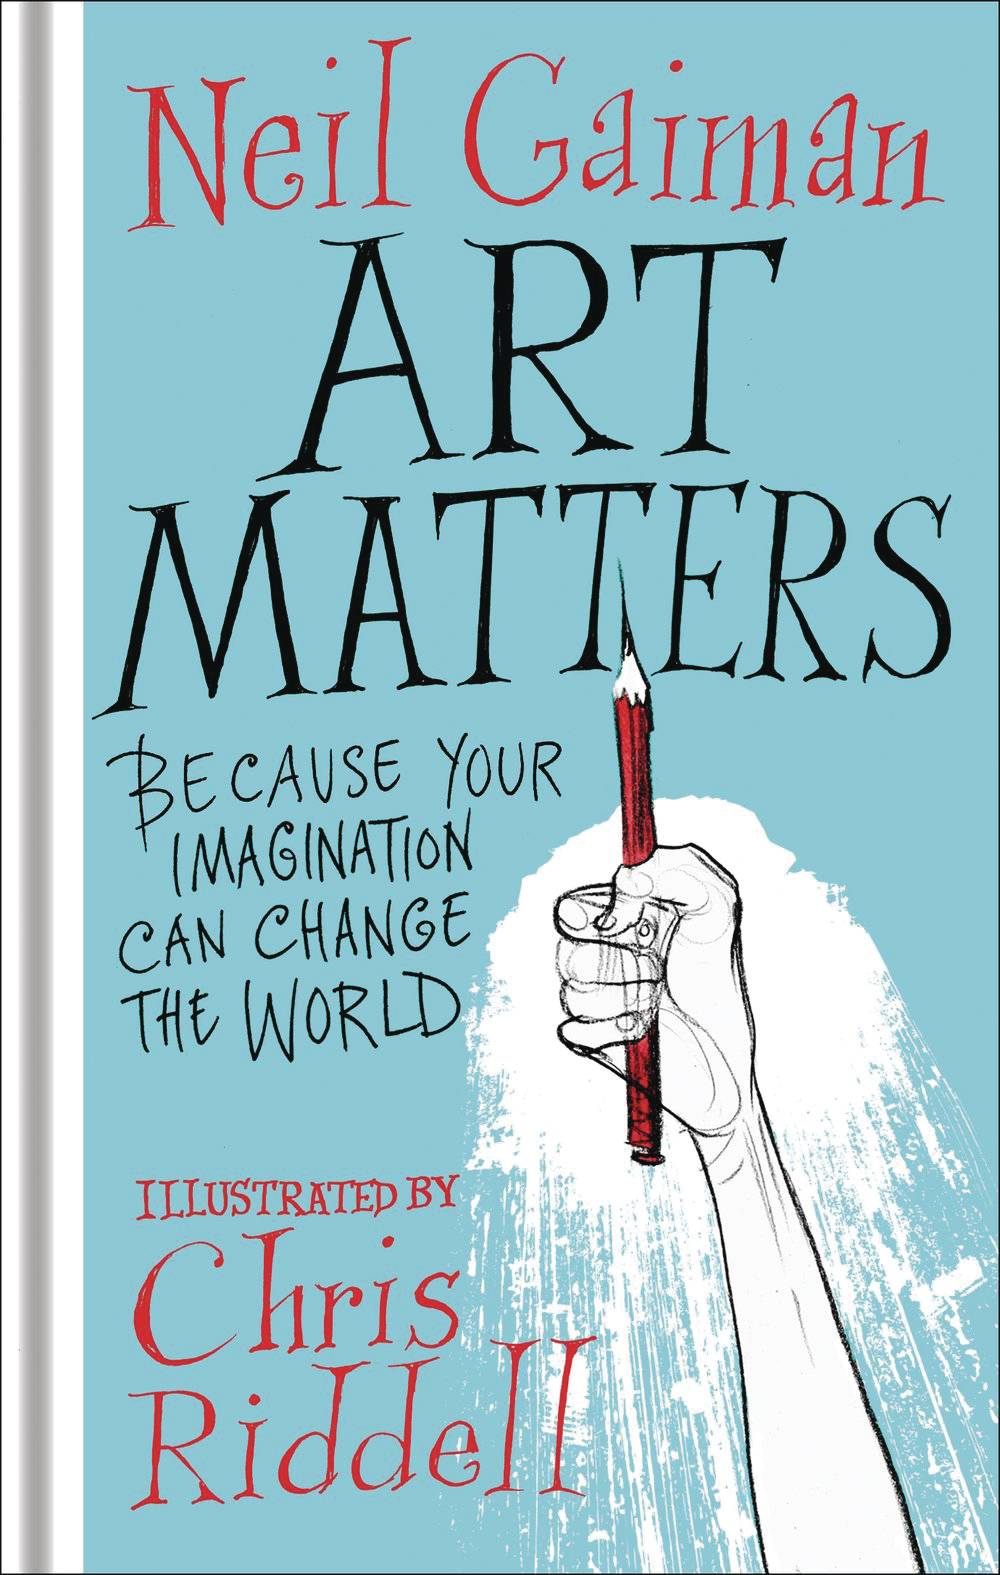 ART MATTERS BECAUSE YOUR IMAGINATION CAN CHANGE WORLD.jpg